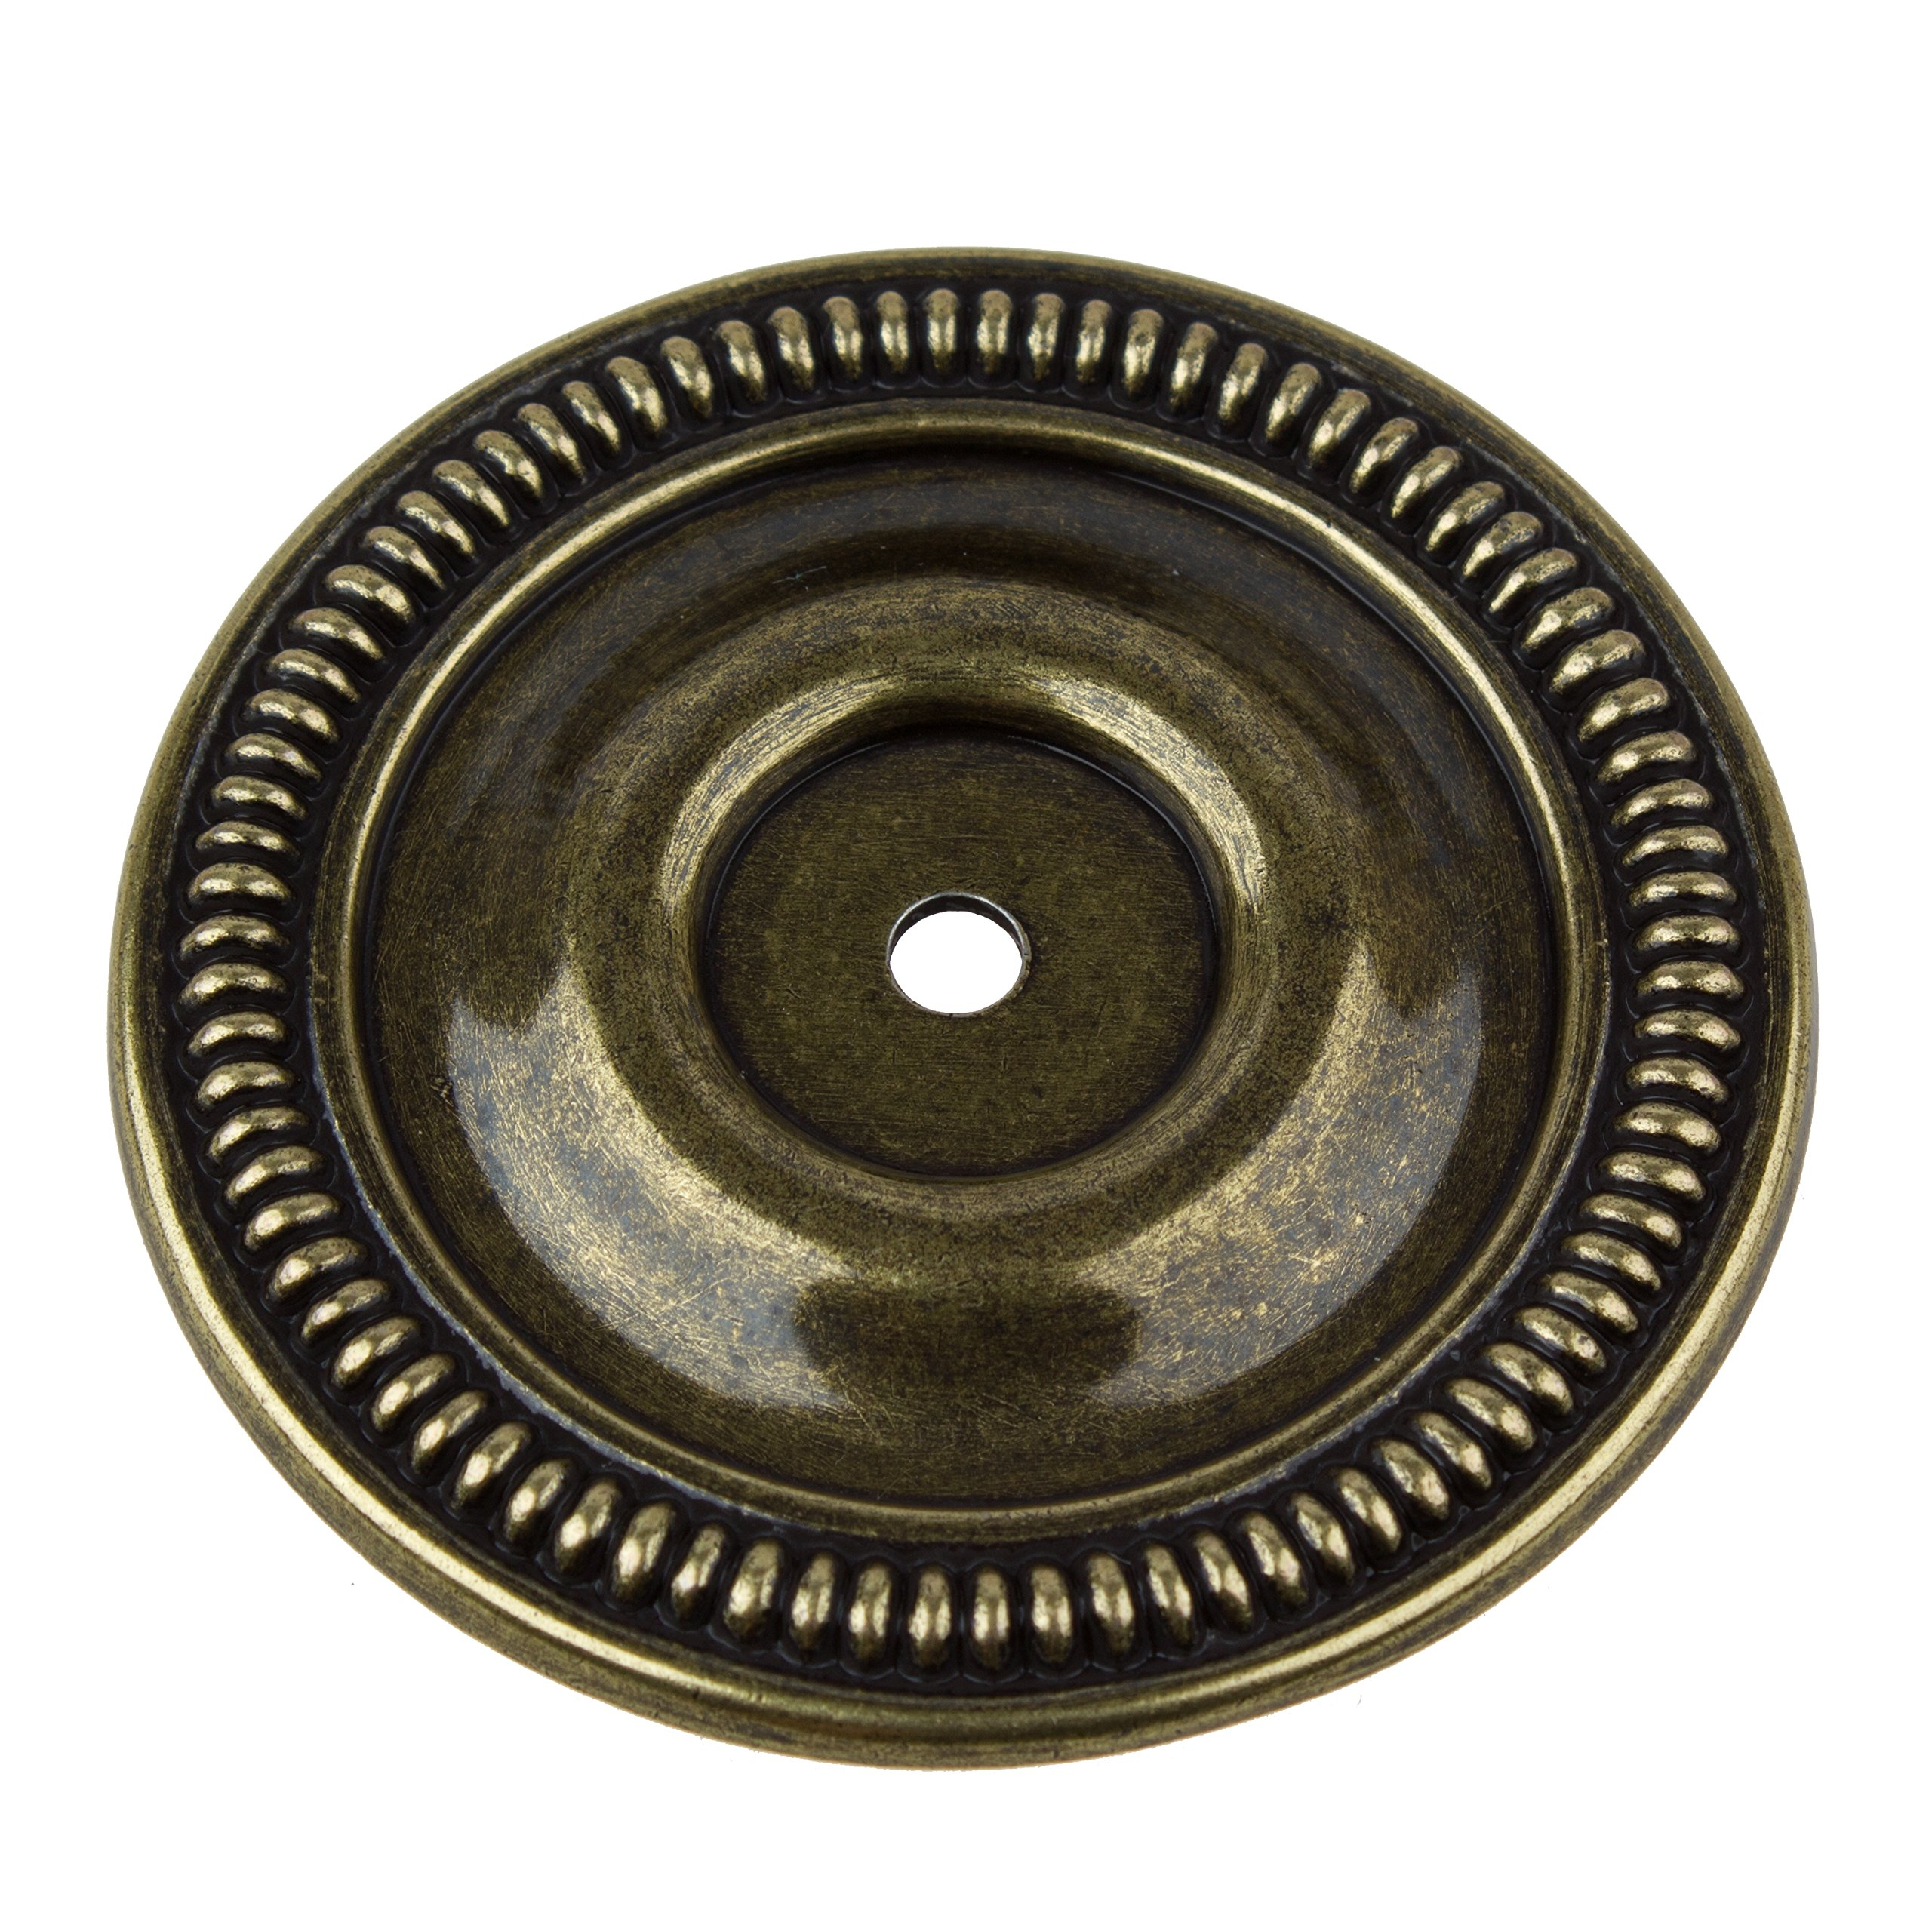 GlideRite Hardware 2-1/2-inch Diameter Antique Brass Round Back Plates (Pack of 10)